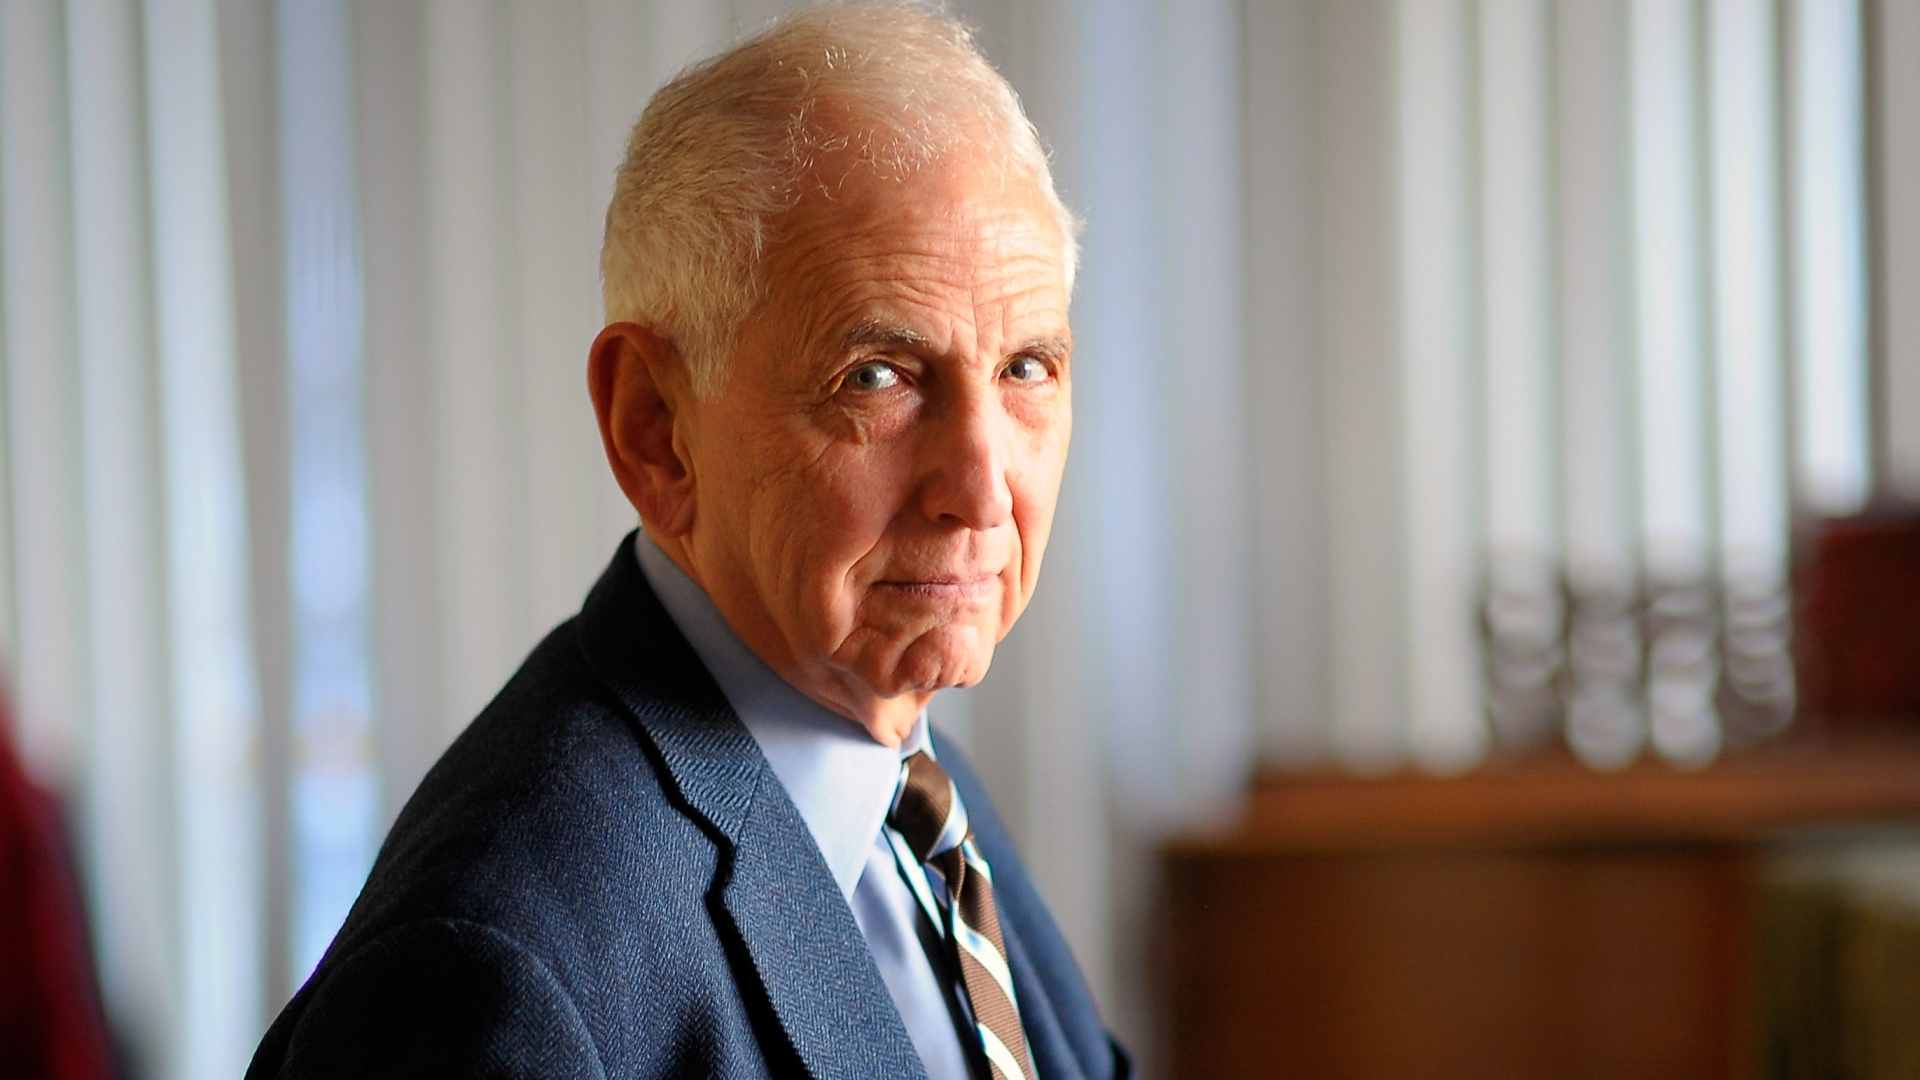 Daniel Ellsberg, known for releasing the Pentagon Papers, photographed for the Post in 2010. (Credit: John McDonnell/The Washington Post via Getty Images)